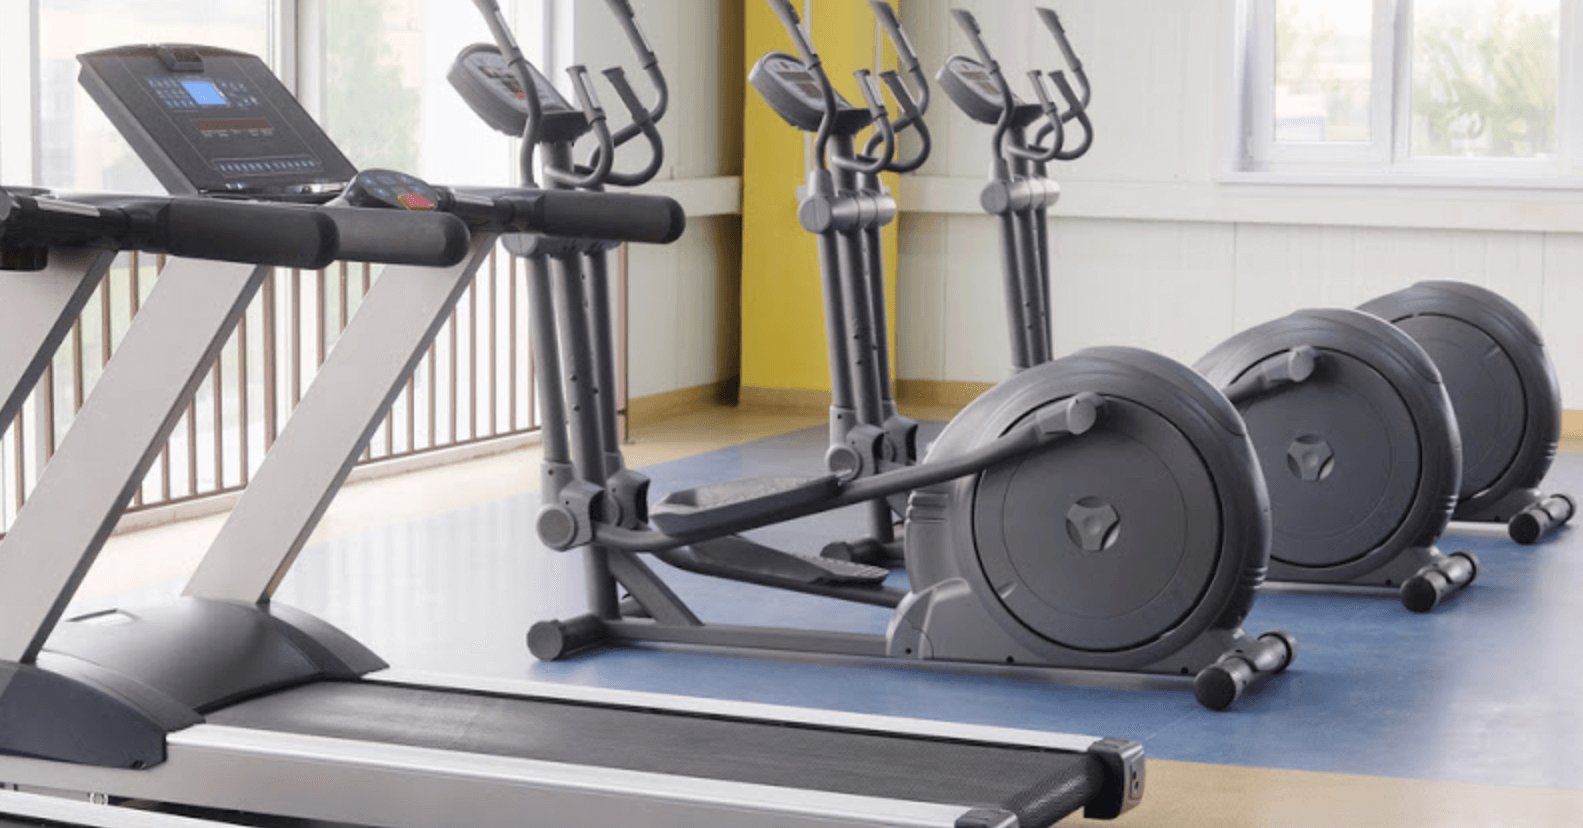 which is better elliptical machine or treadmill